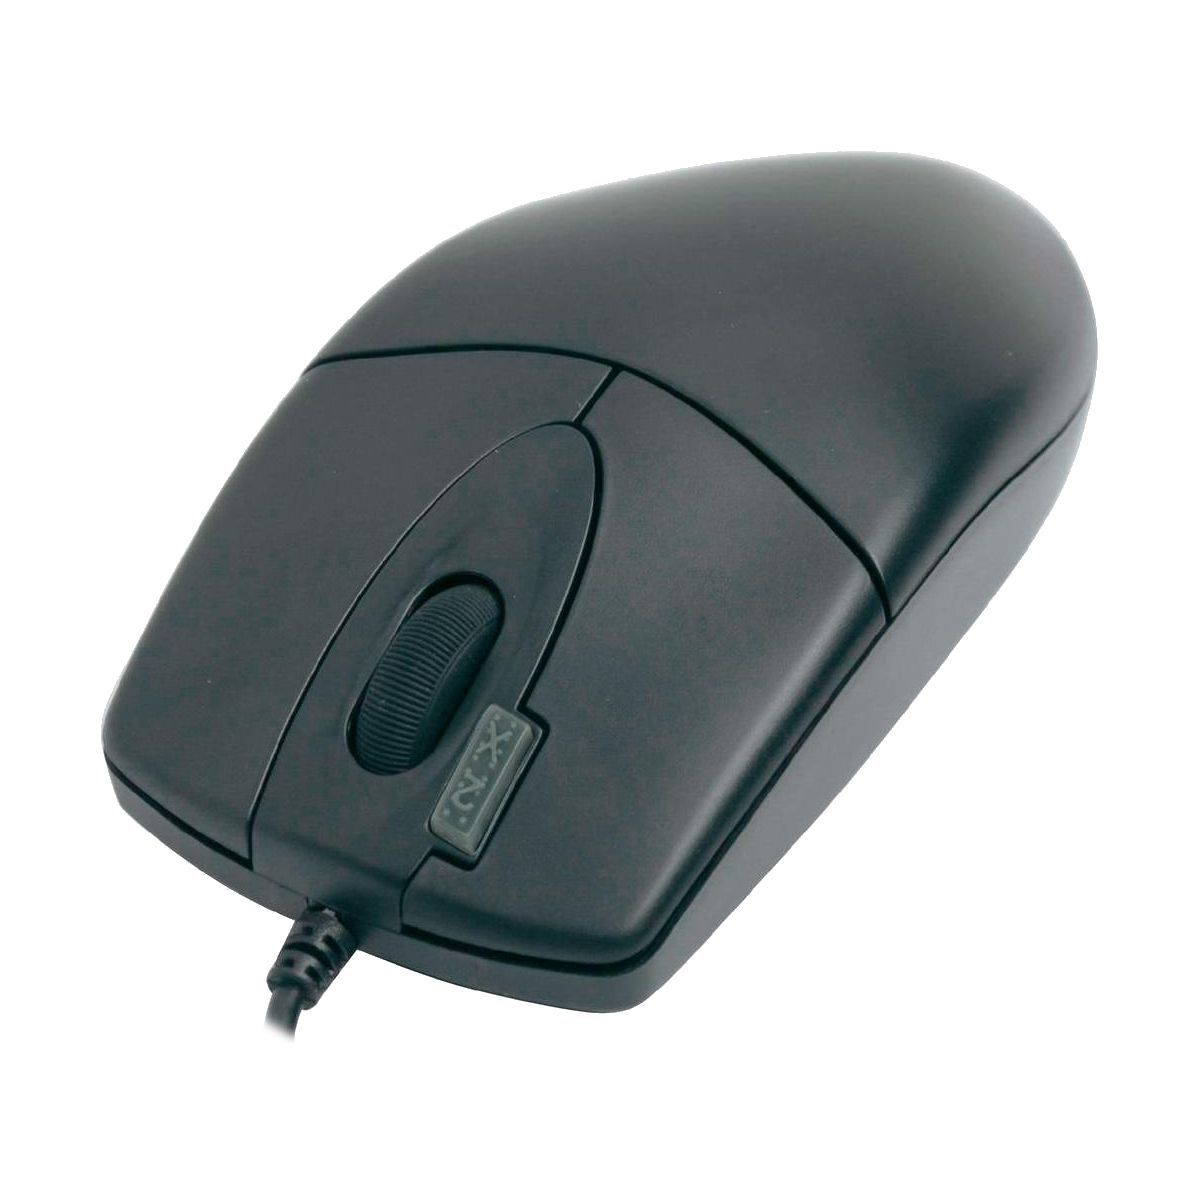 Fine Mouse Usb Pinout Pictures - Everything You Need to Know About ...